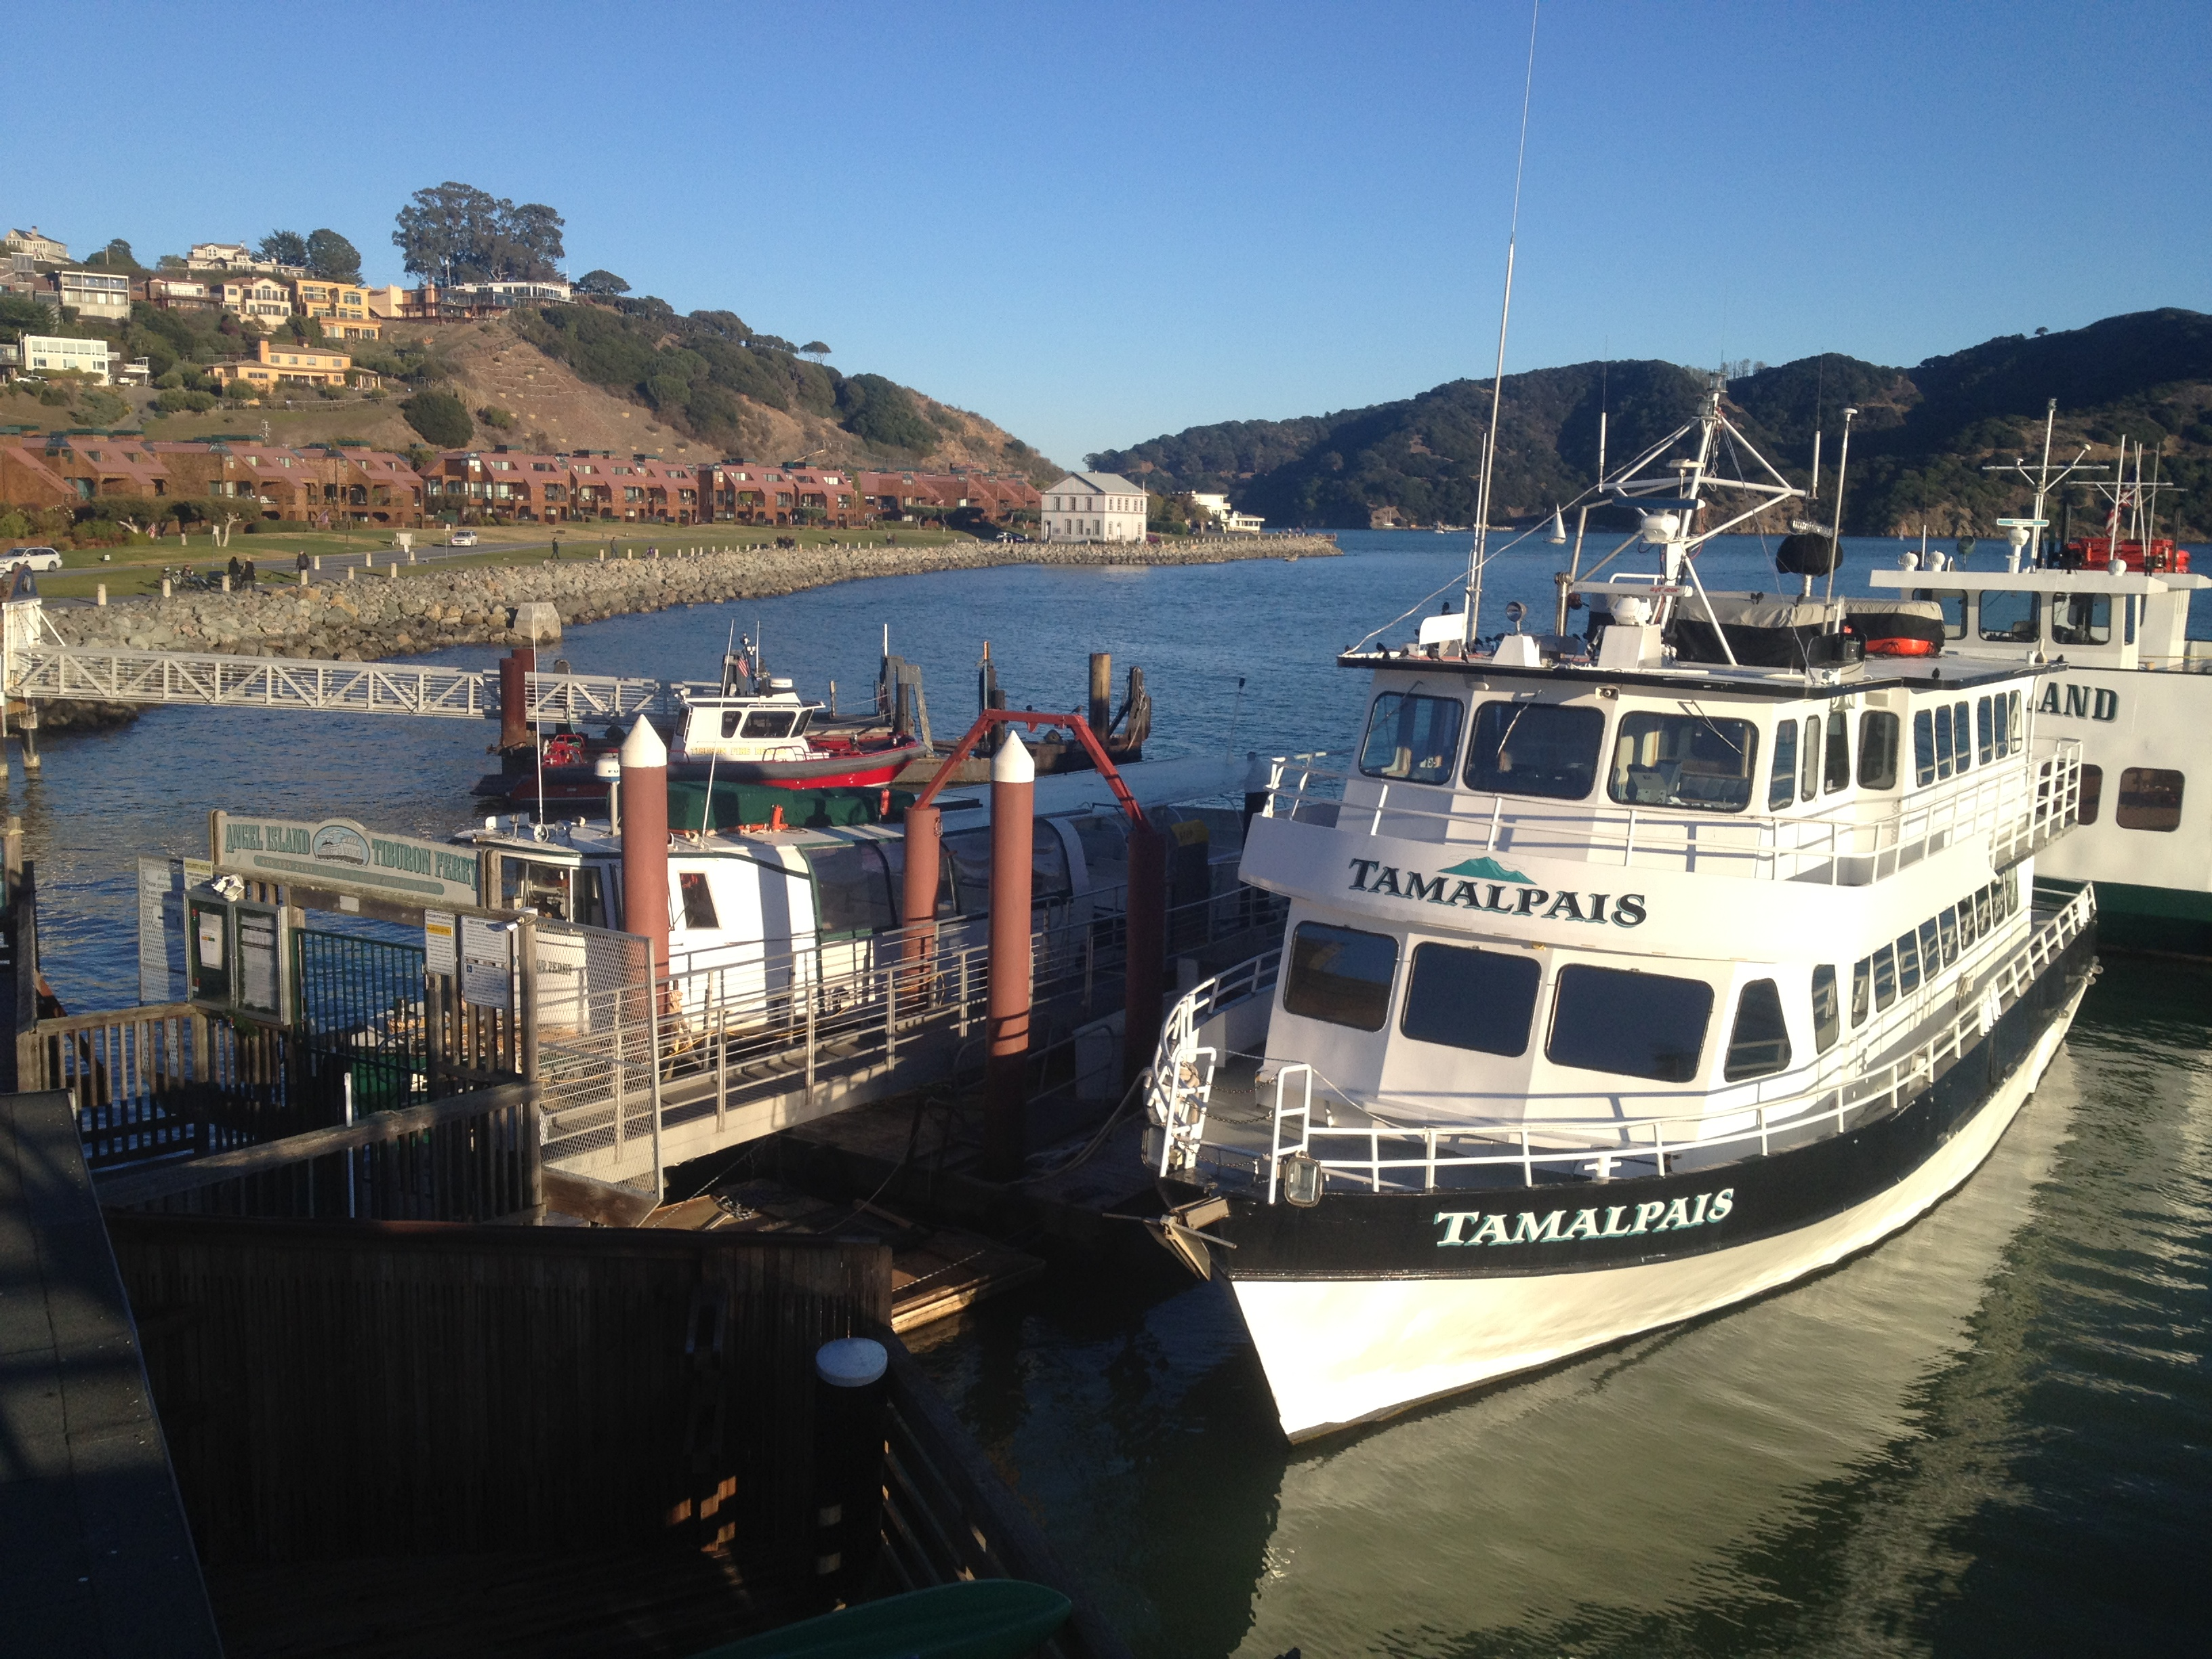 Ferry boat docked in Tiburon on San Francisco Bay